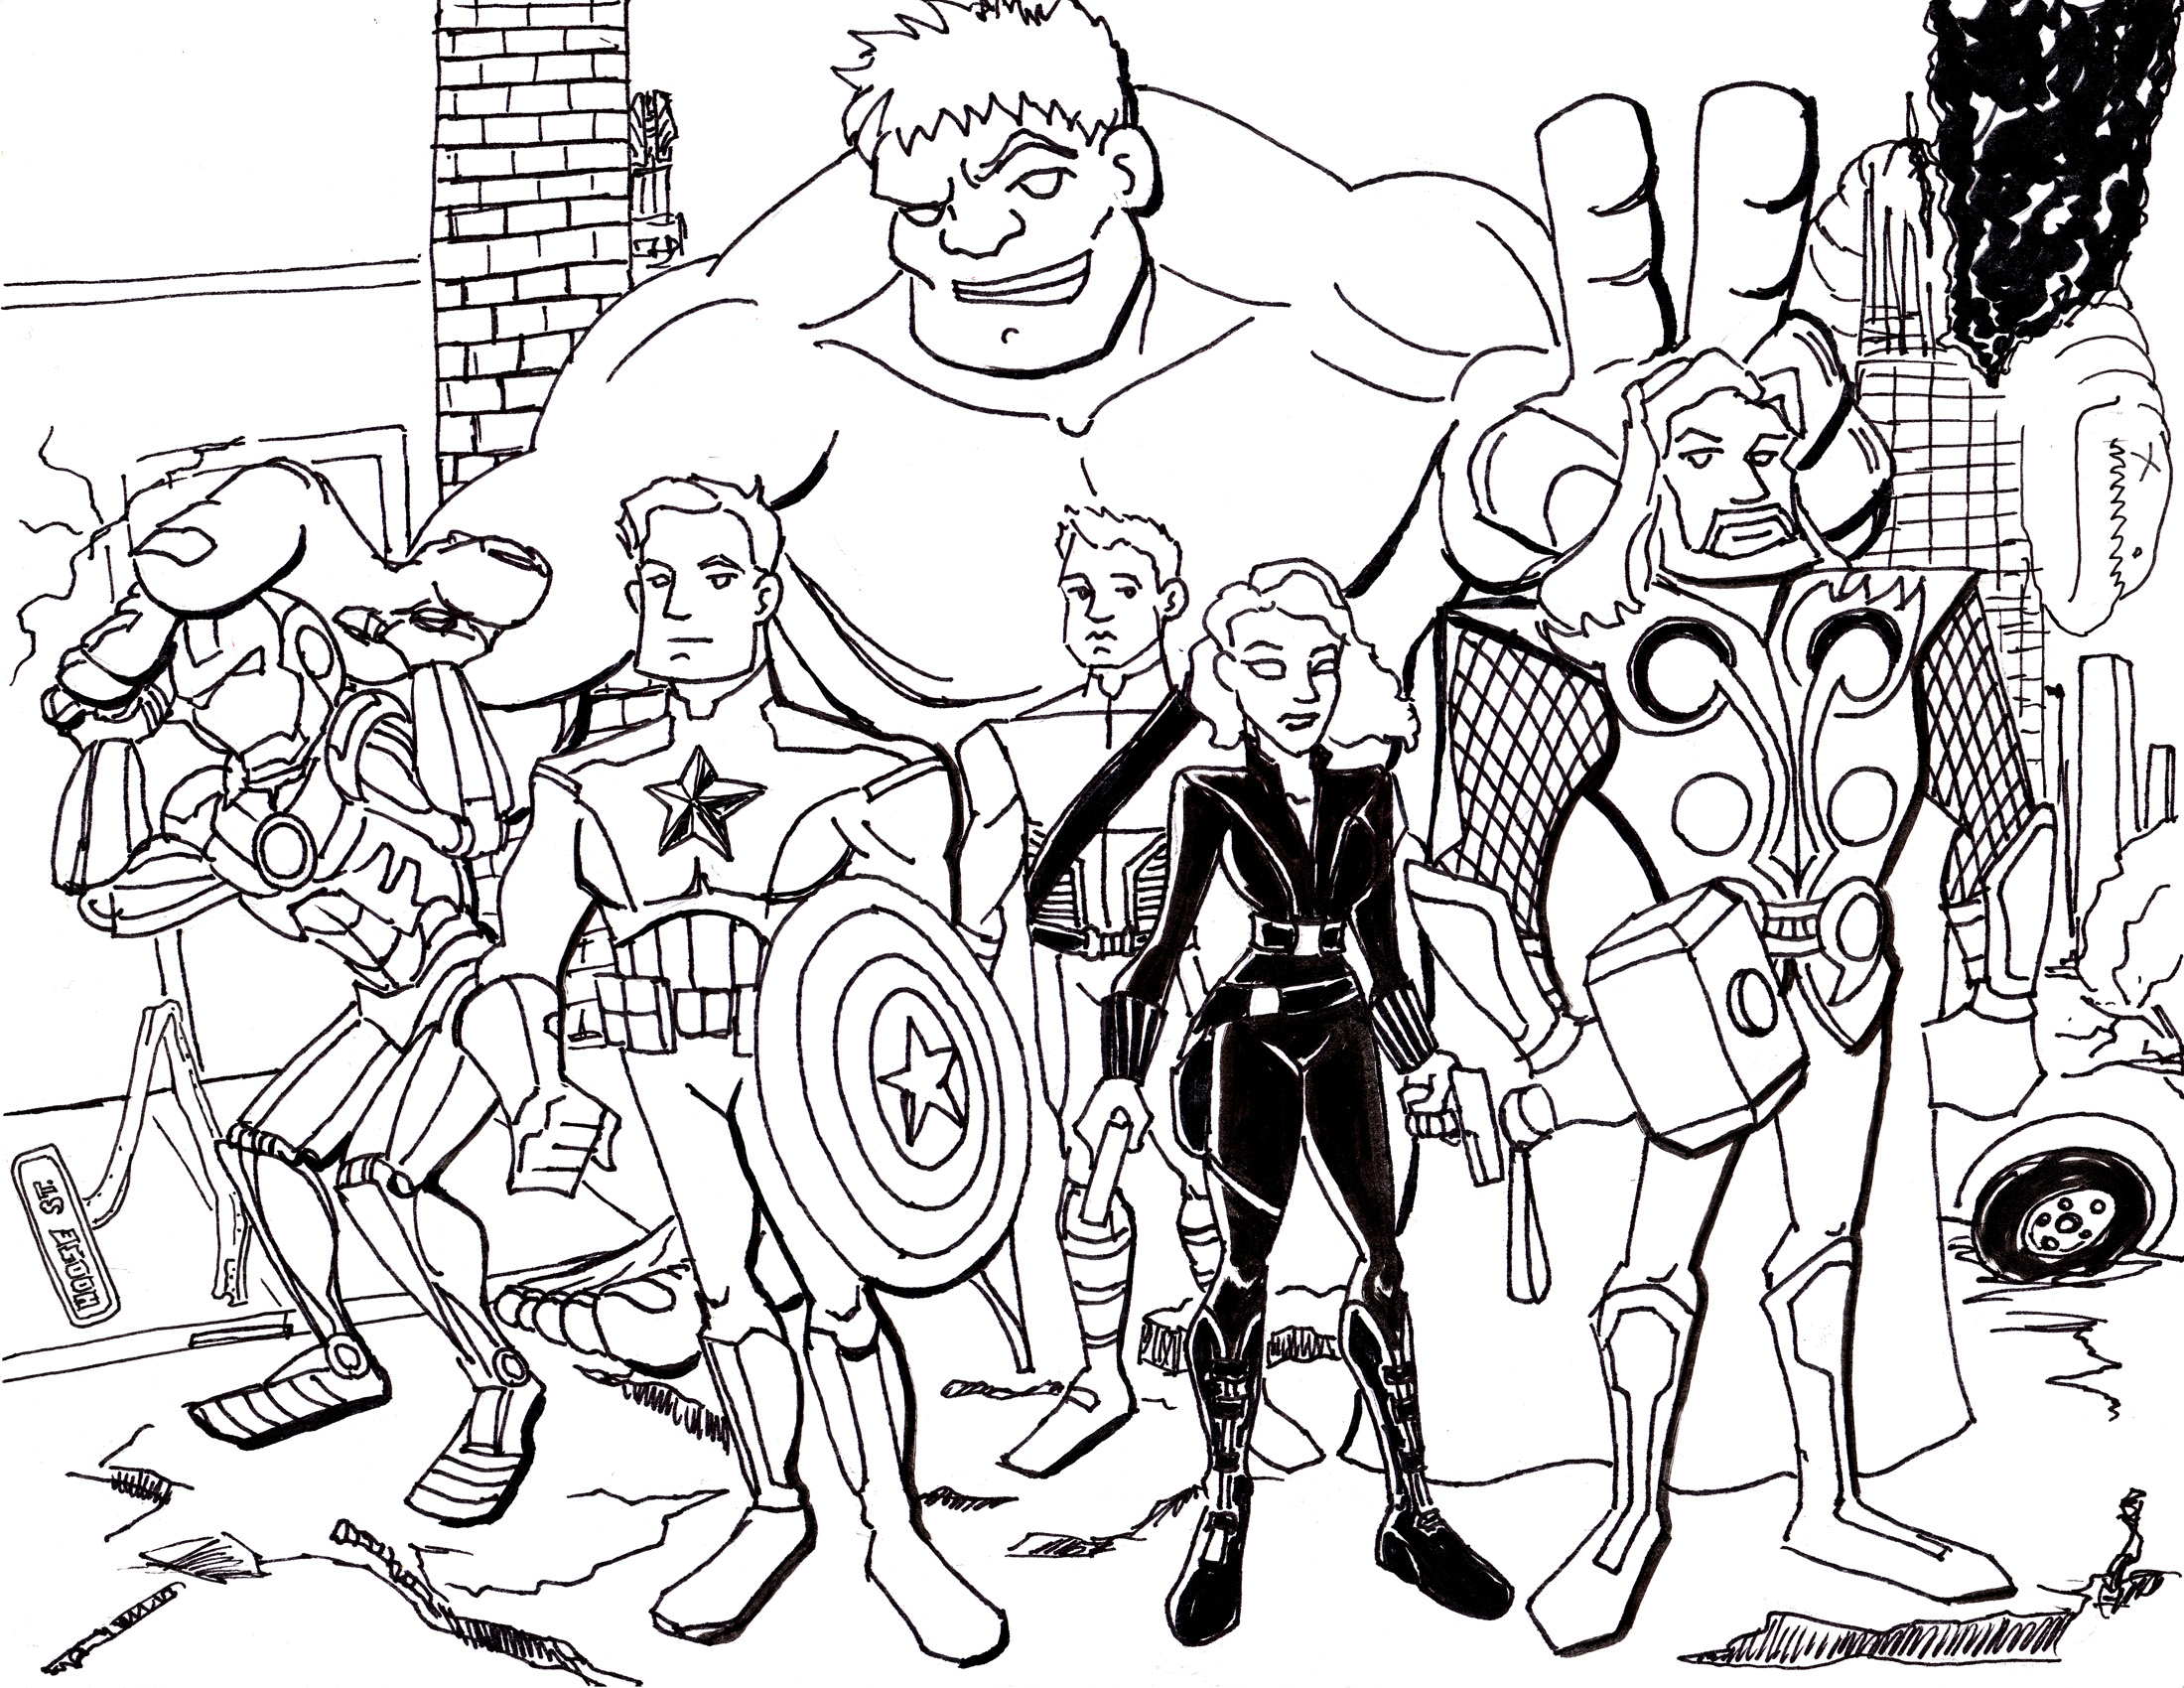 Printable Avengers Coloring Pages to Print 15t - To print for your project